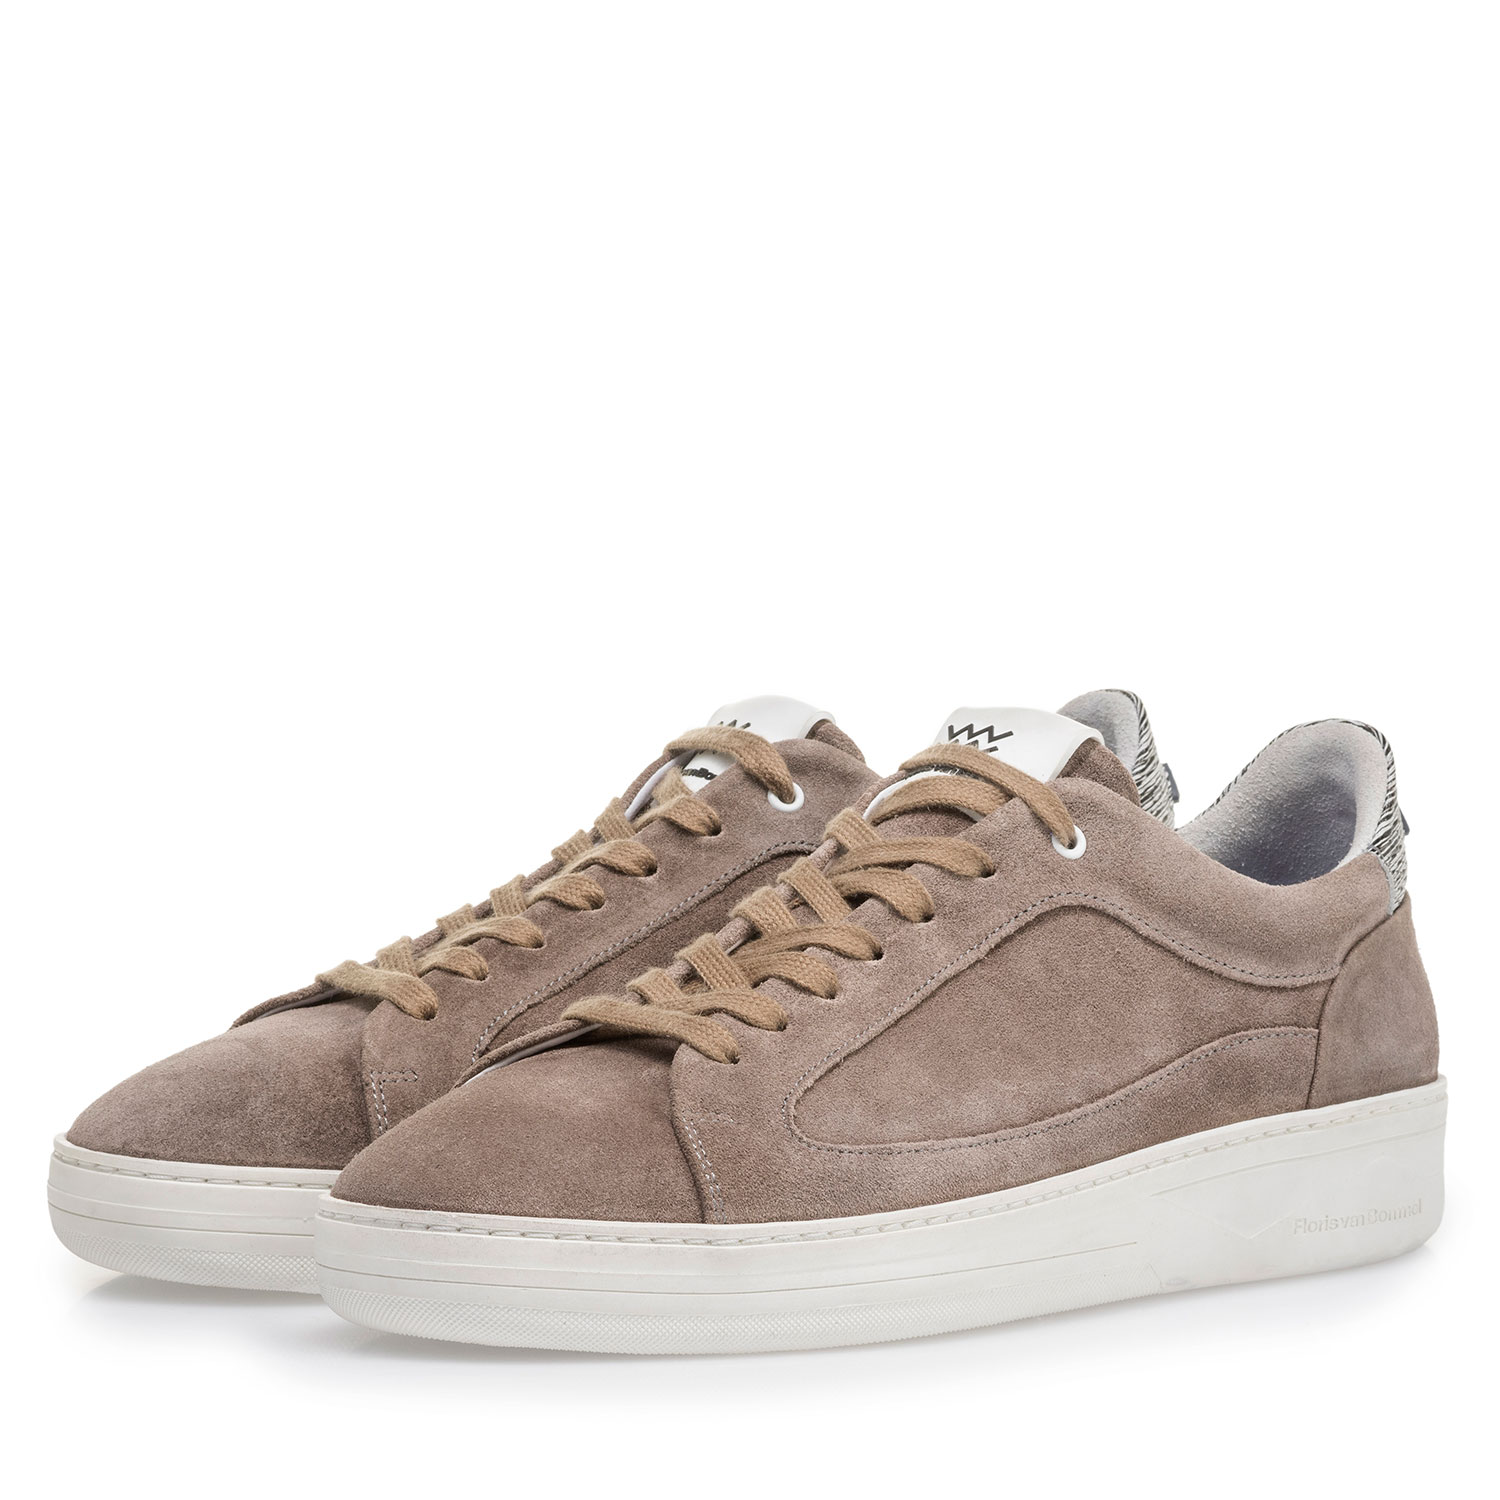 13265/05 - Taupe-coloured suede leather sneaker